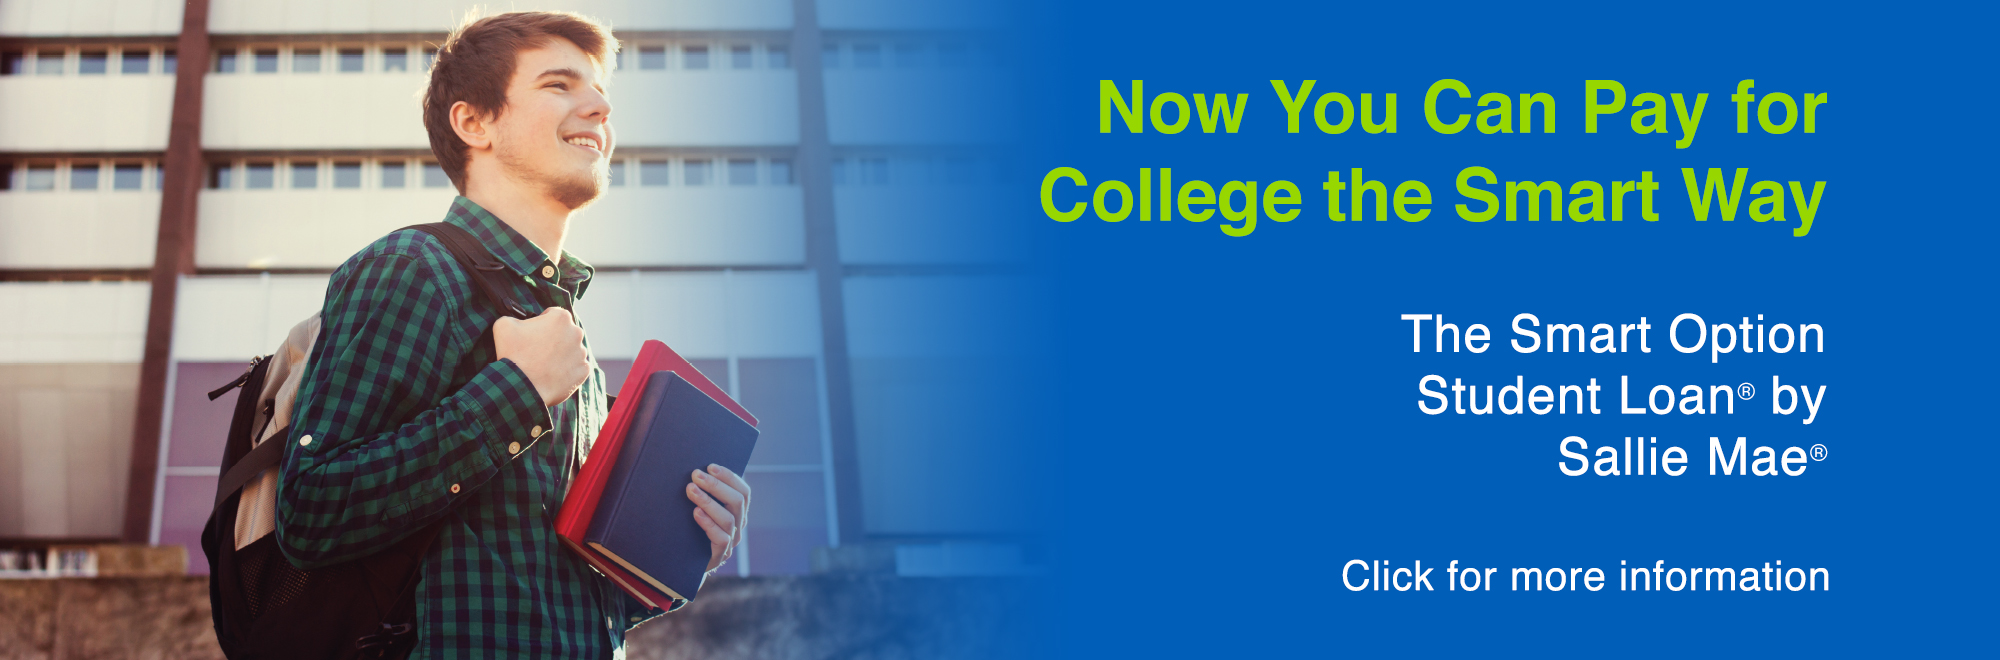 Sallie Mae Student Loans Web Banner. Now you can pay for college the smarter way.